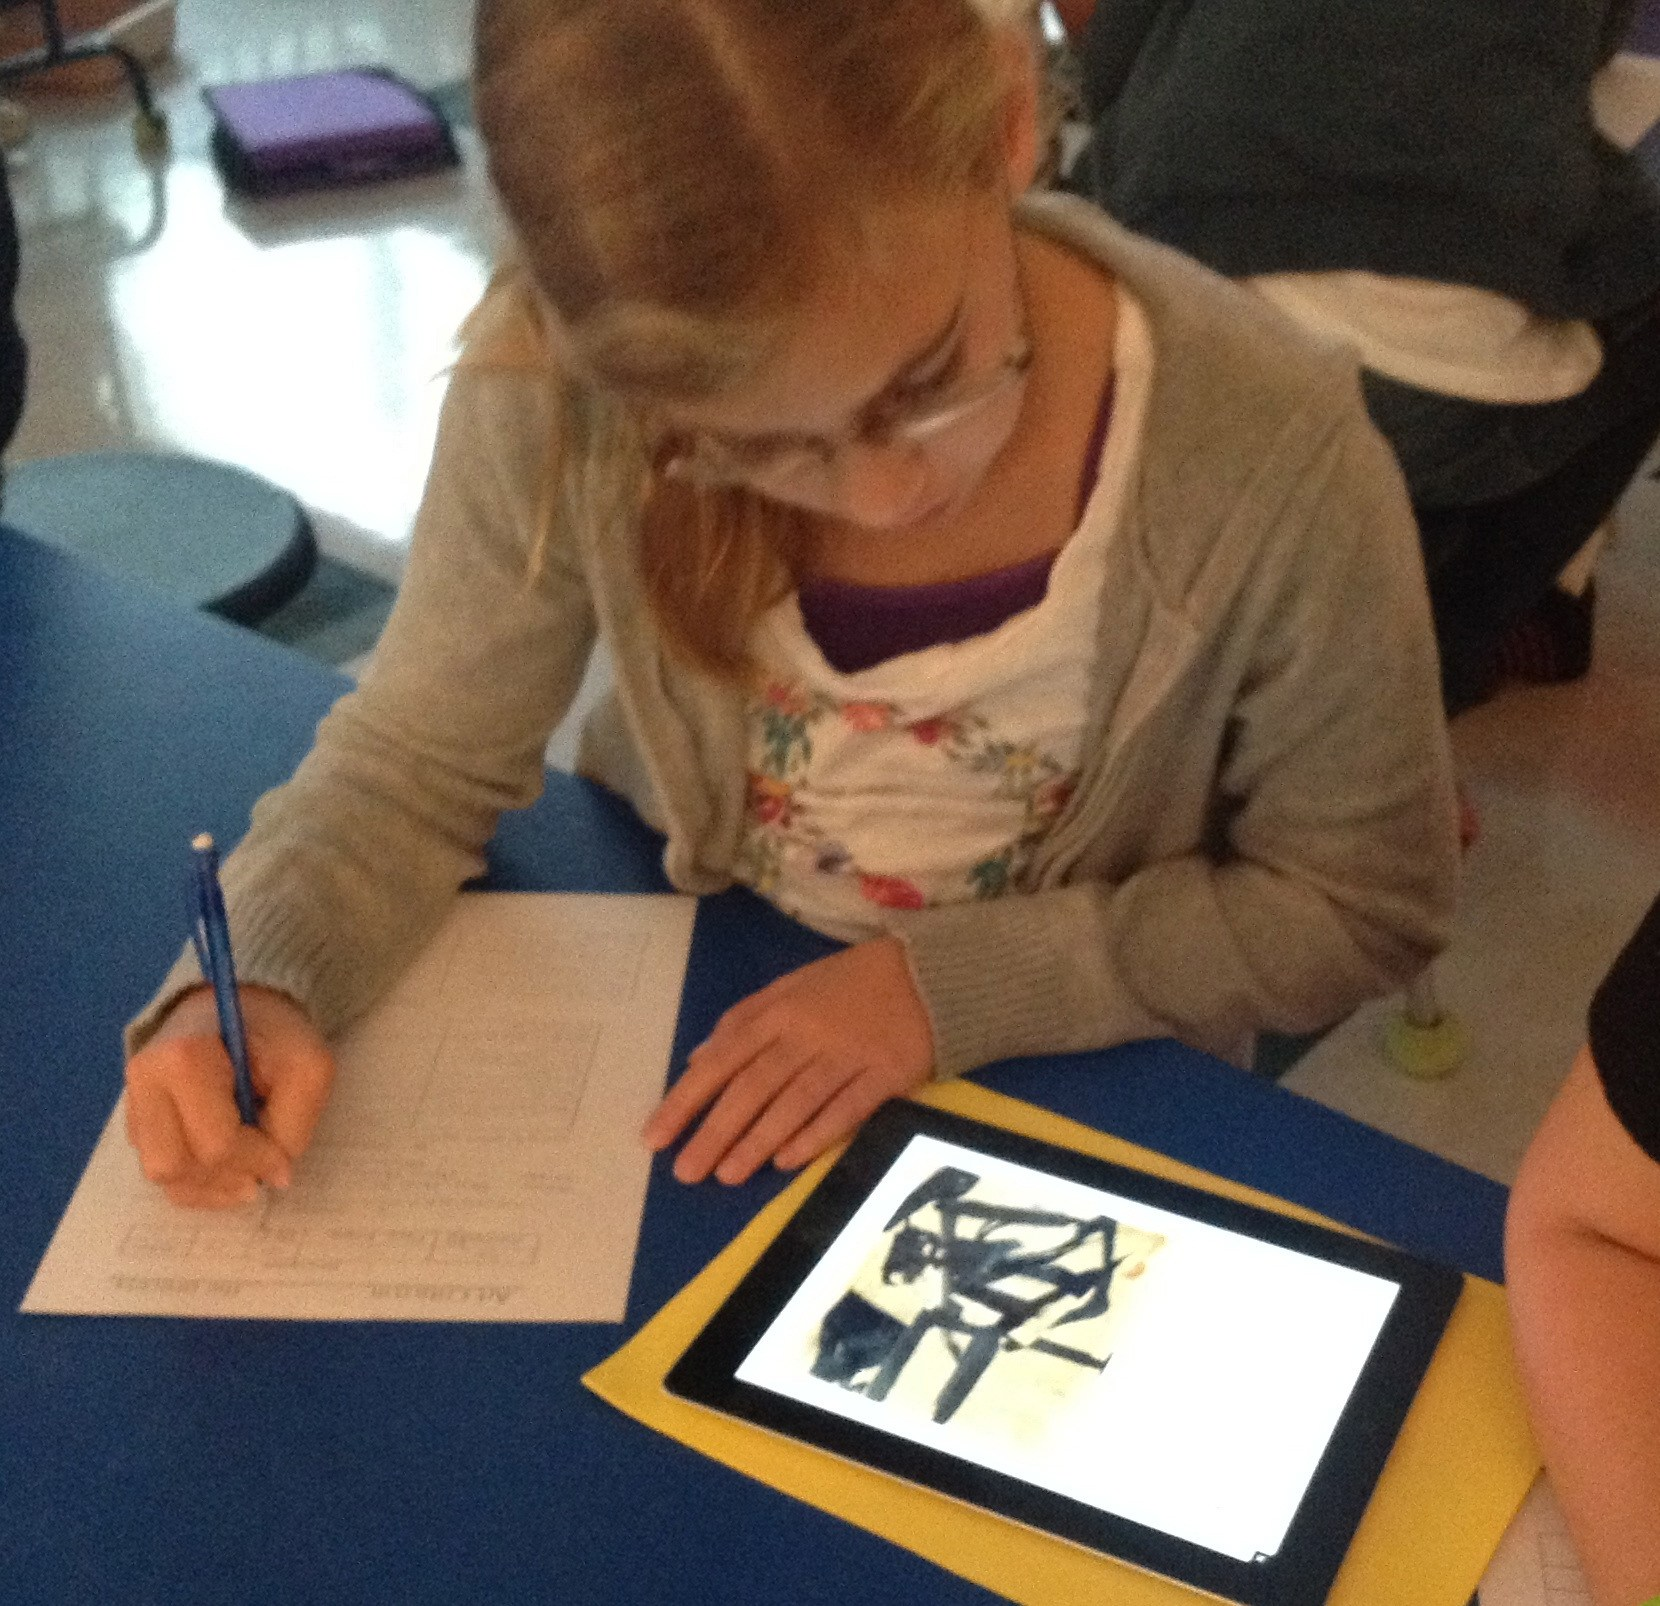 Student working with iPad